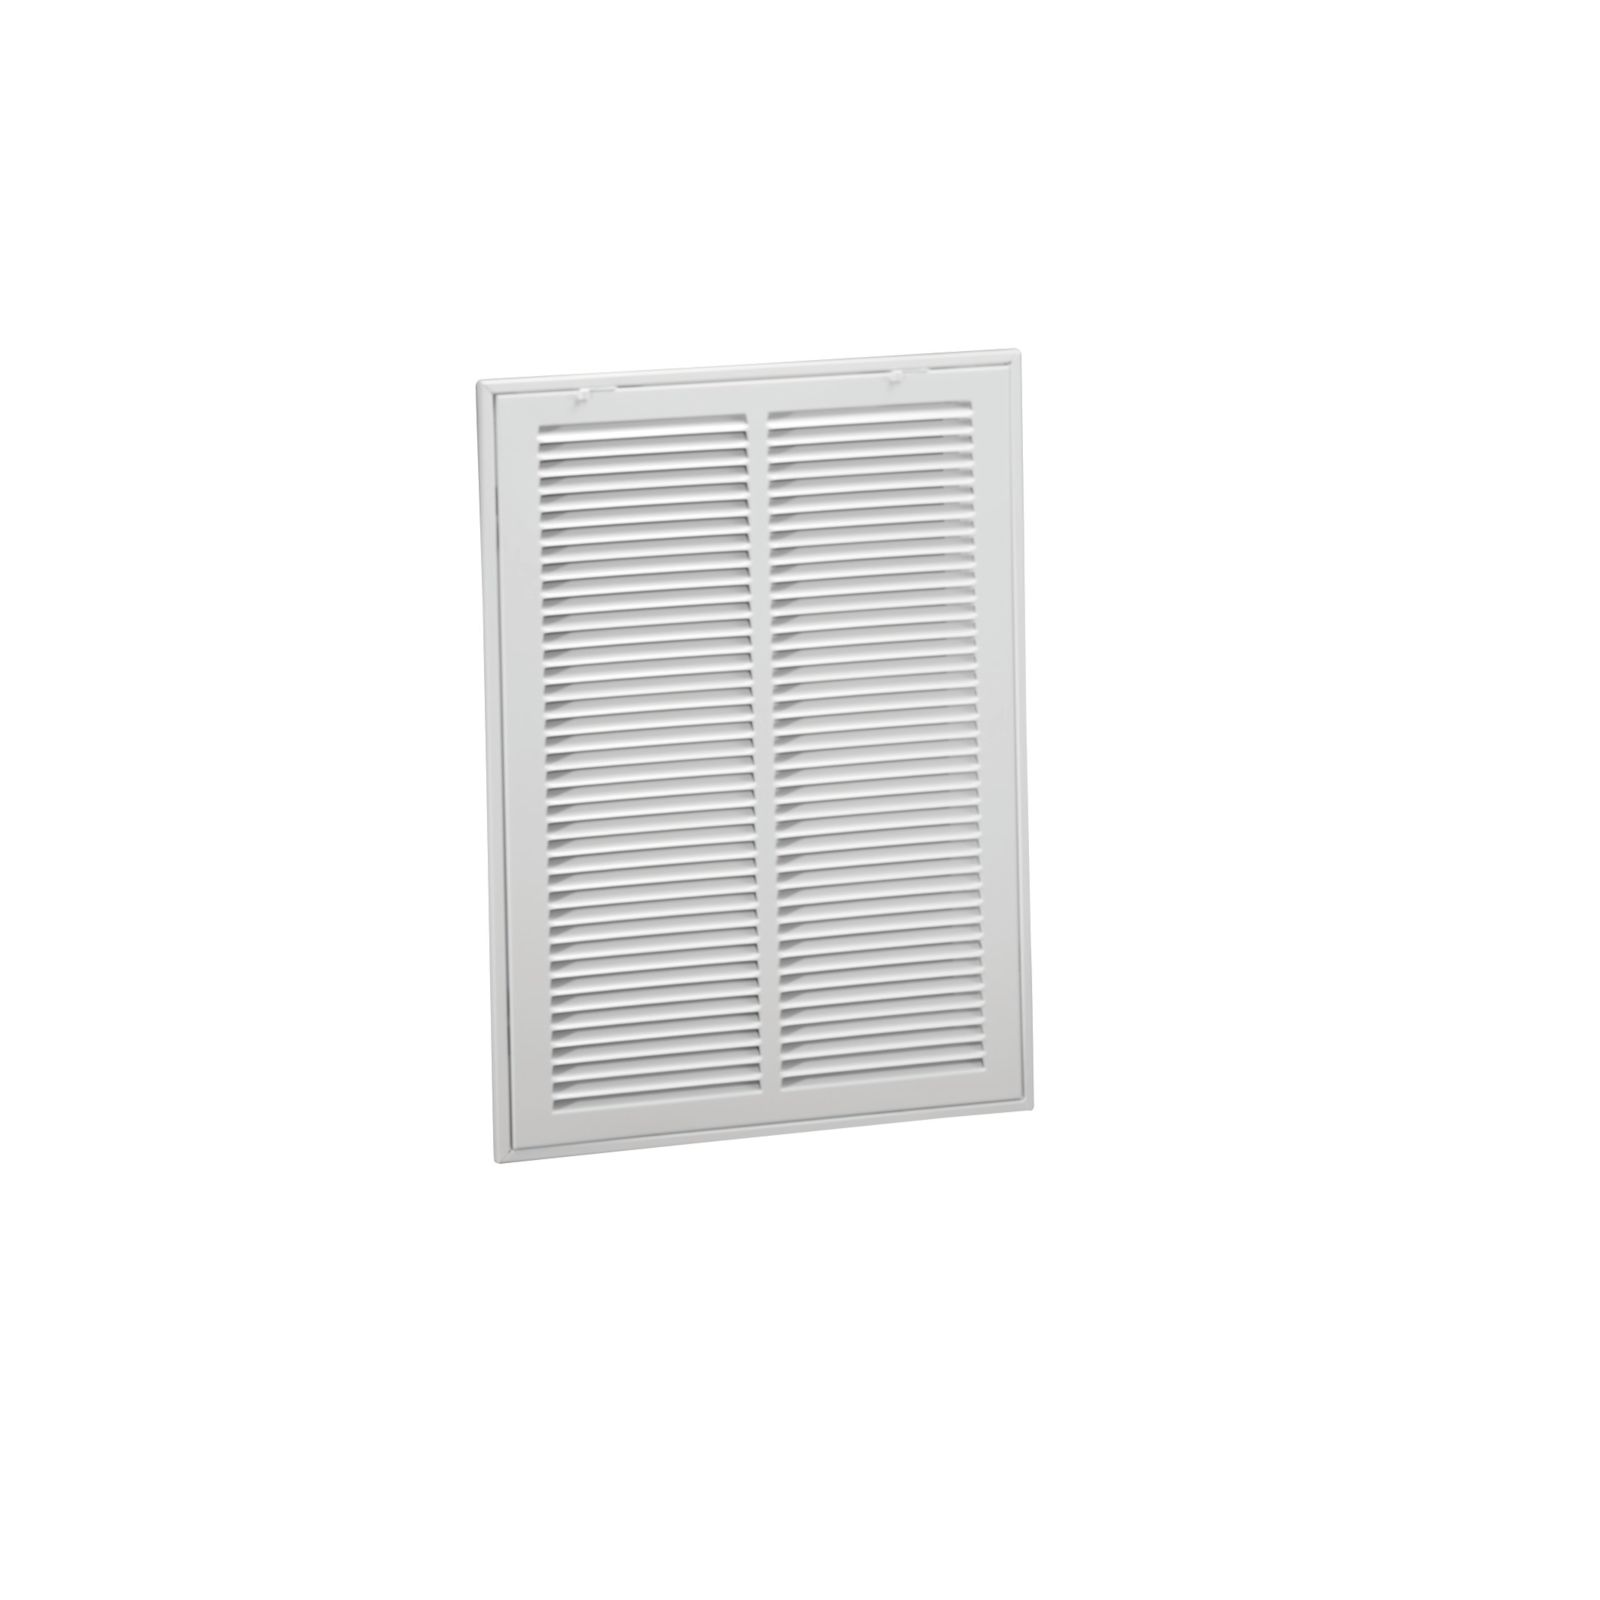 "Hart & Cooley 043503 - #673 Steel Return Air Filter Grille, White Finish, 12"" X 24"""